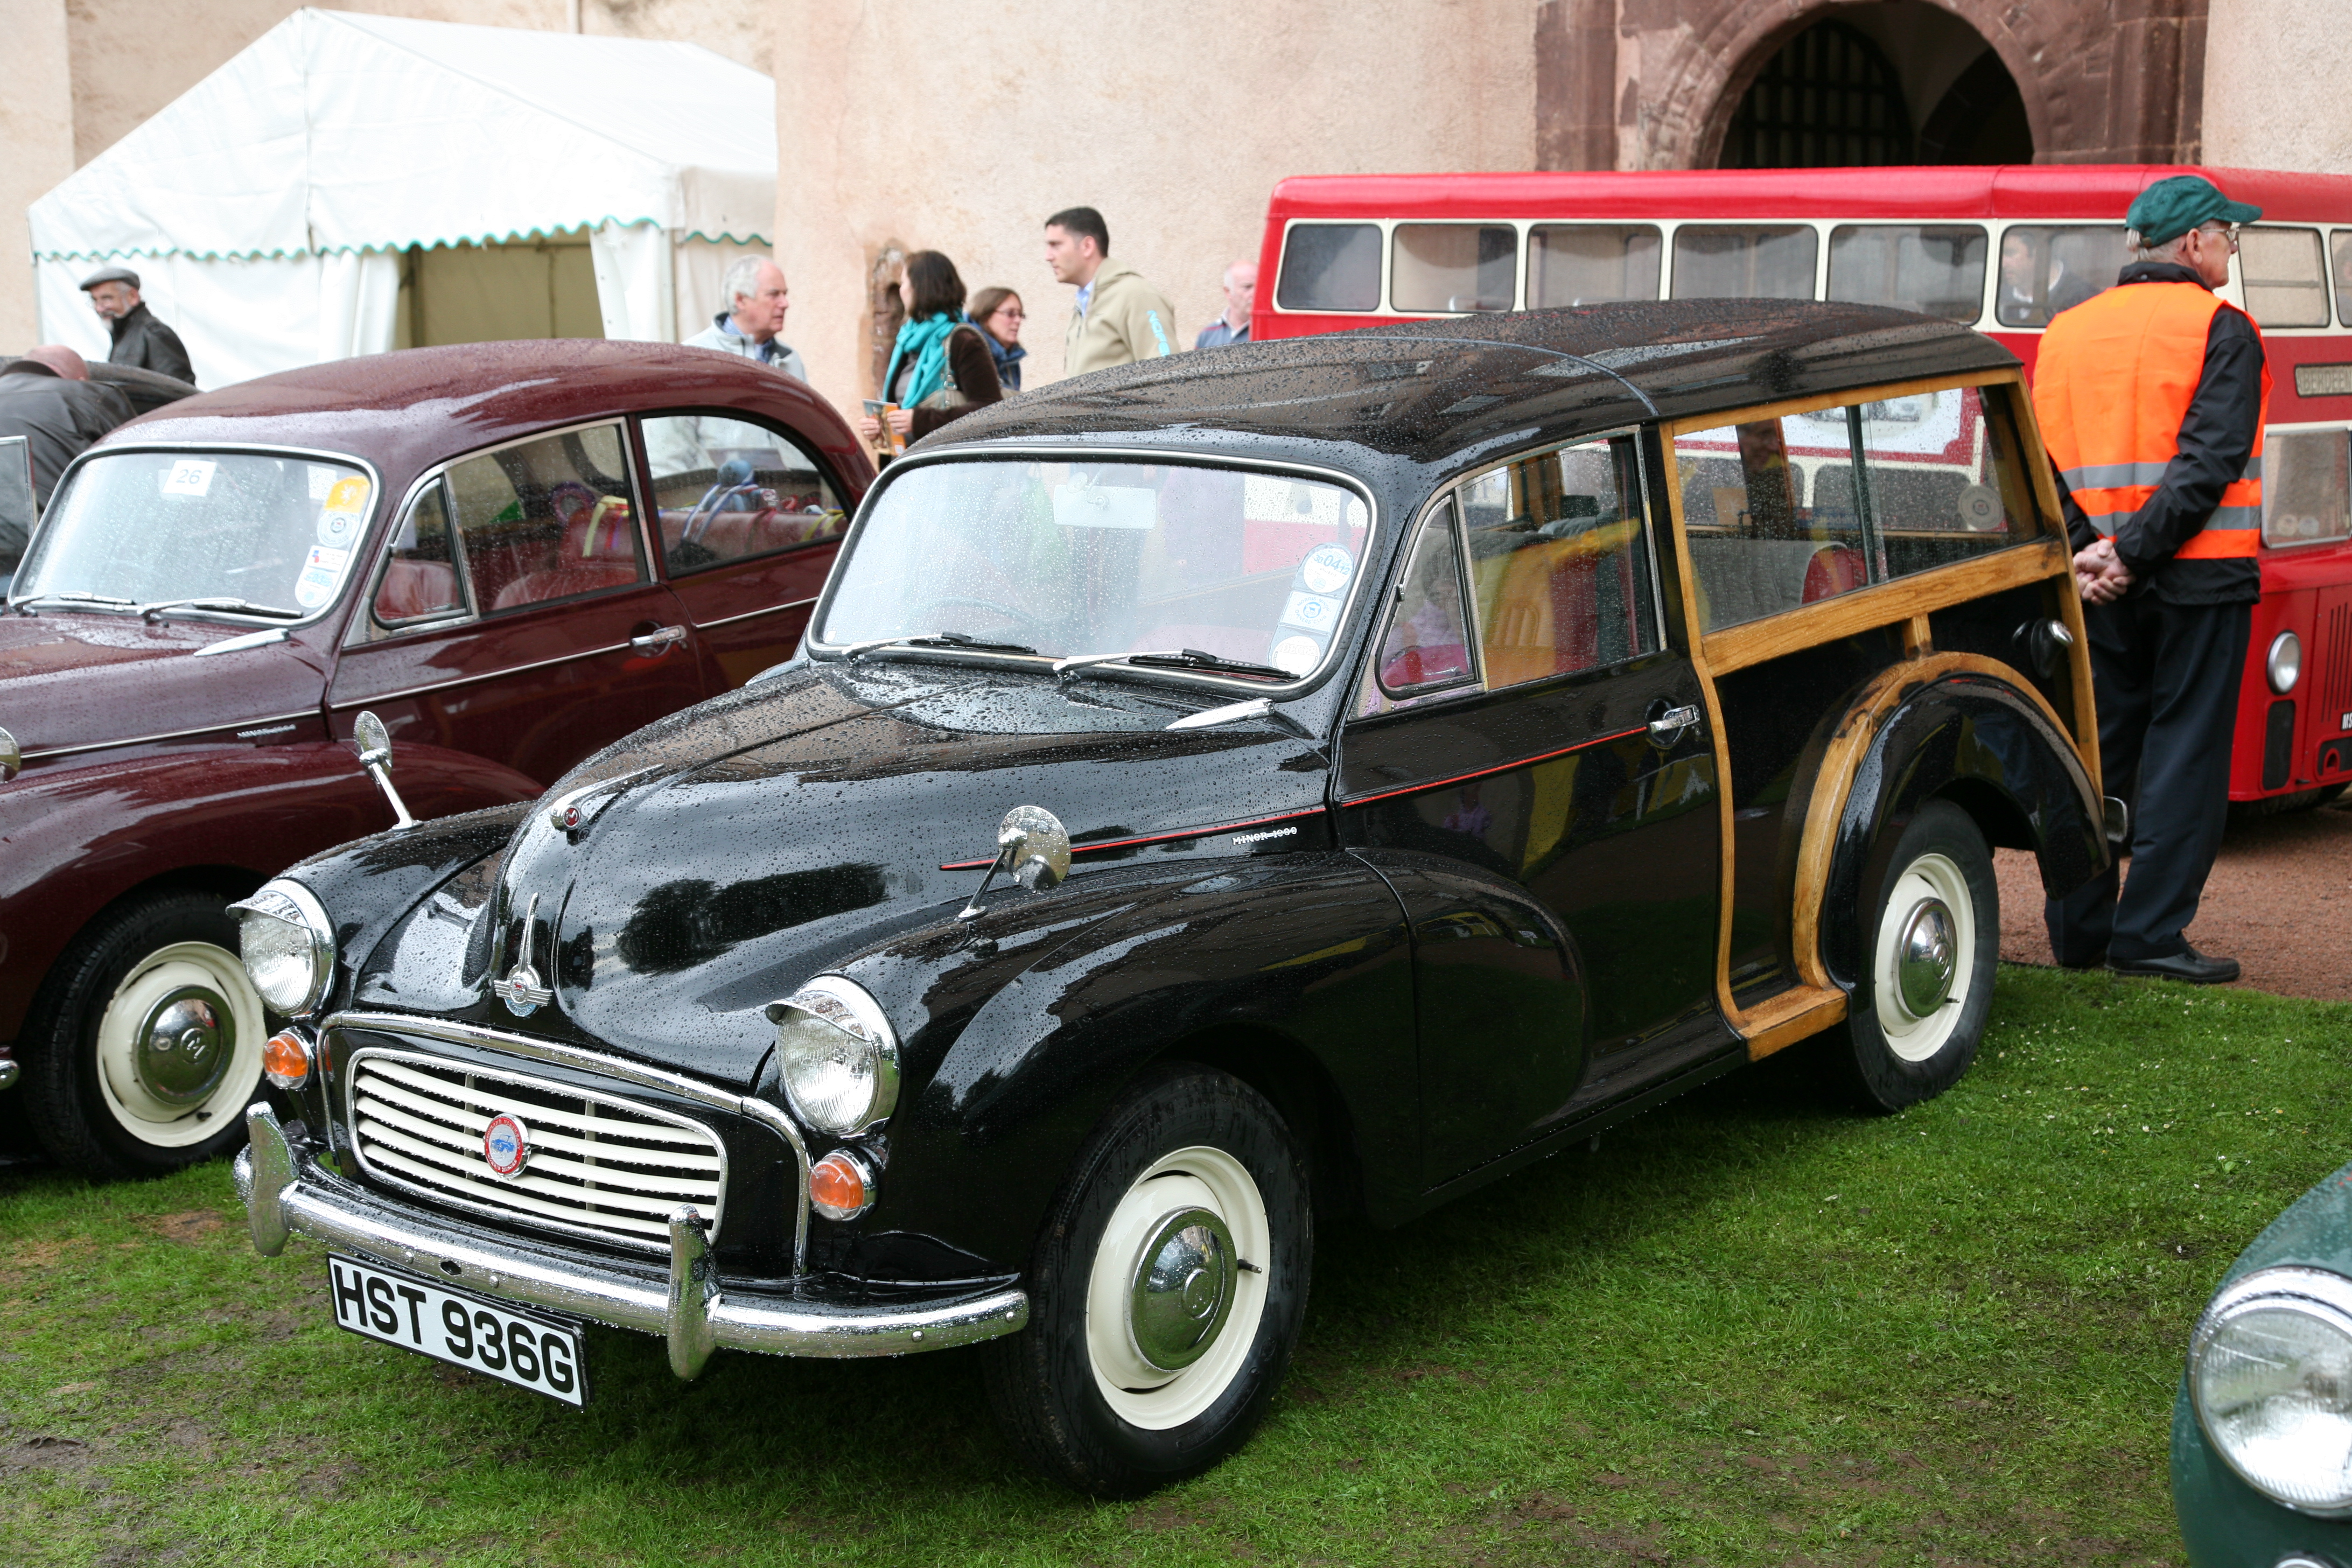 File:1969 Morris Minor Traveller.jpg - Wikimedia Commons